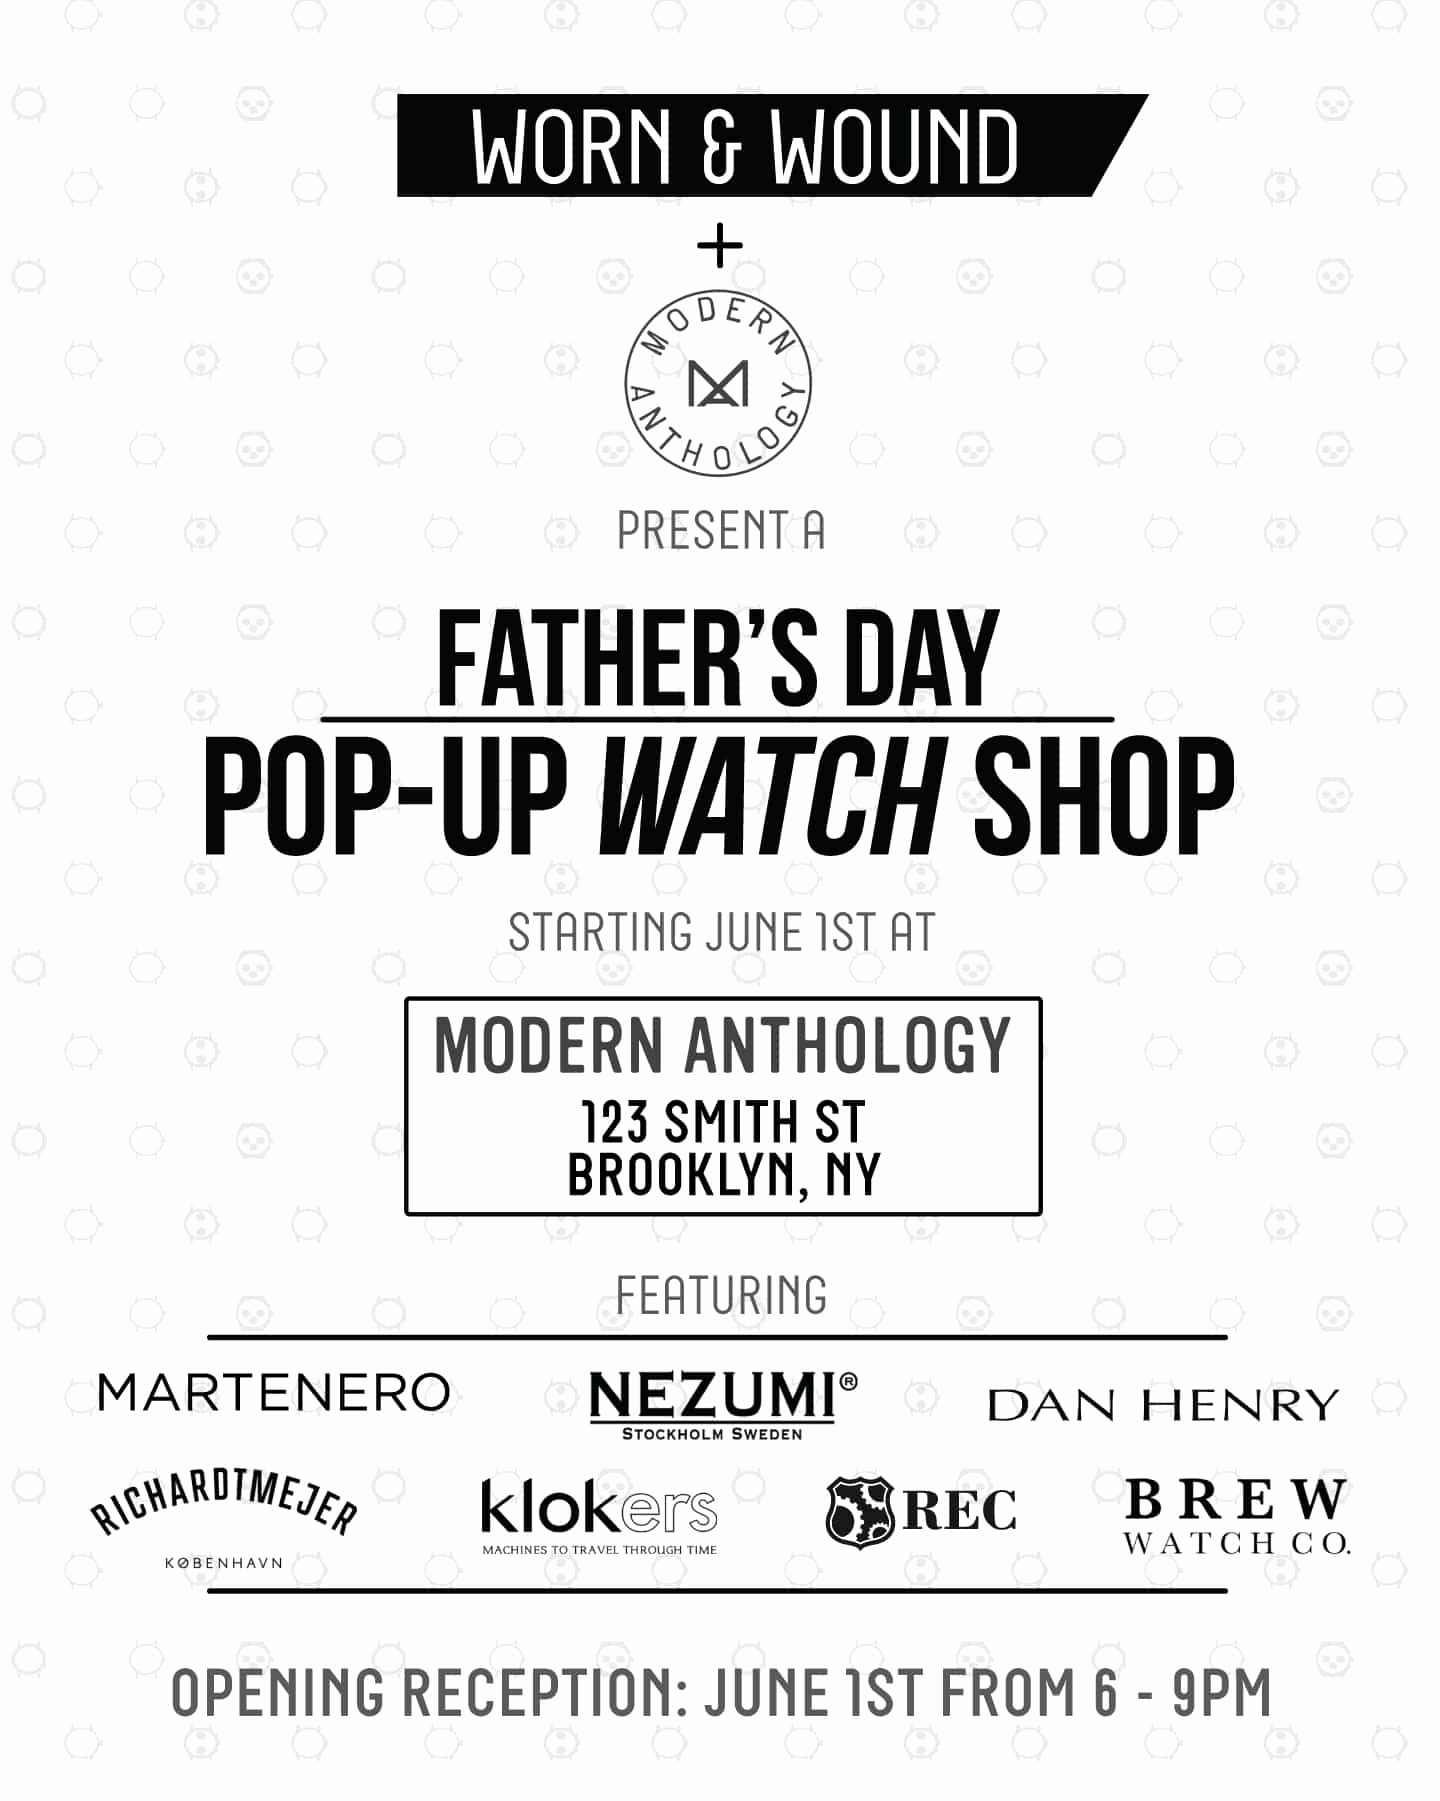 Pop Up Shop Invitation Fresh Announcing the Worn&wound X Modern Anthology Father S Day